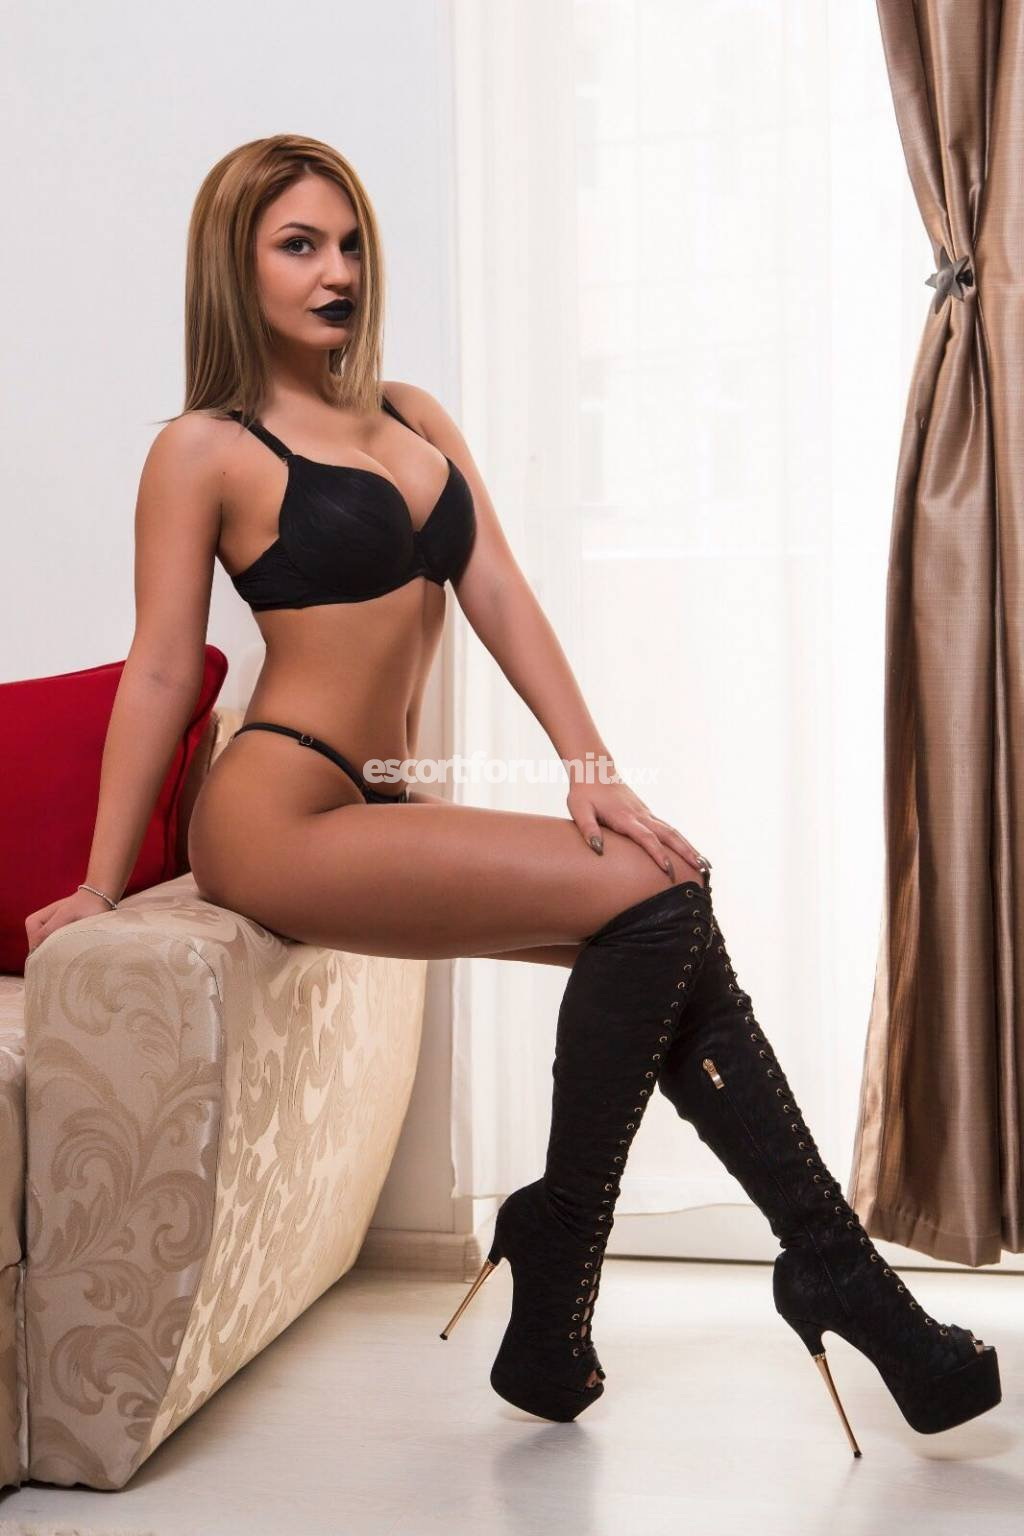 videos porno com escort clermont fd